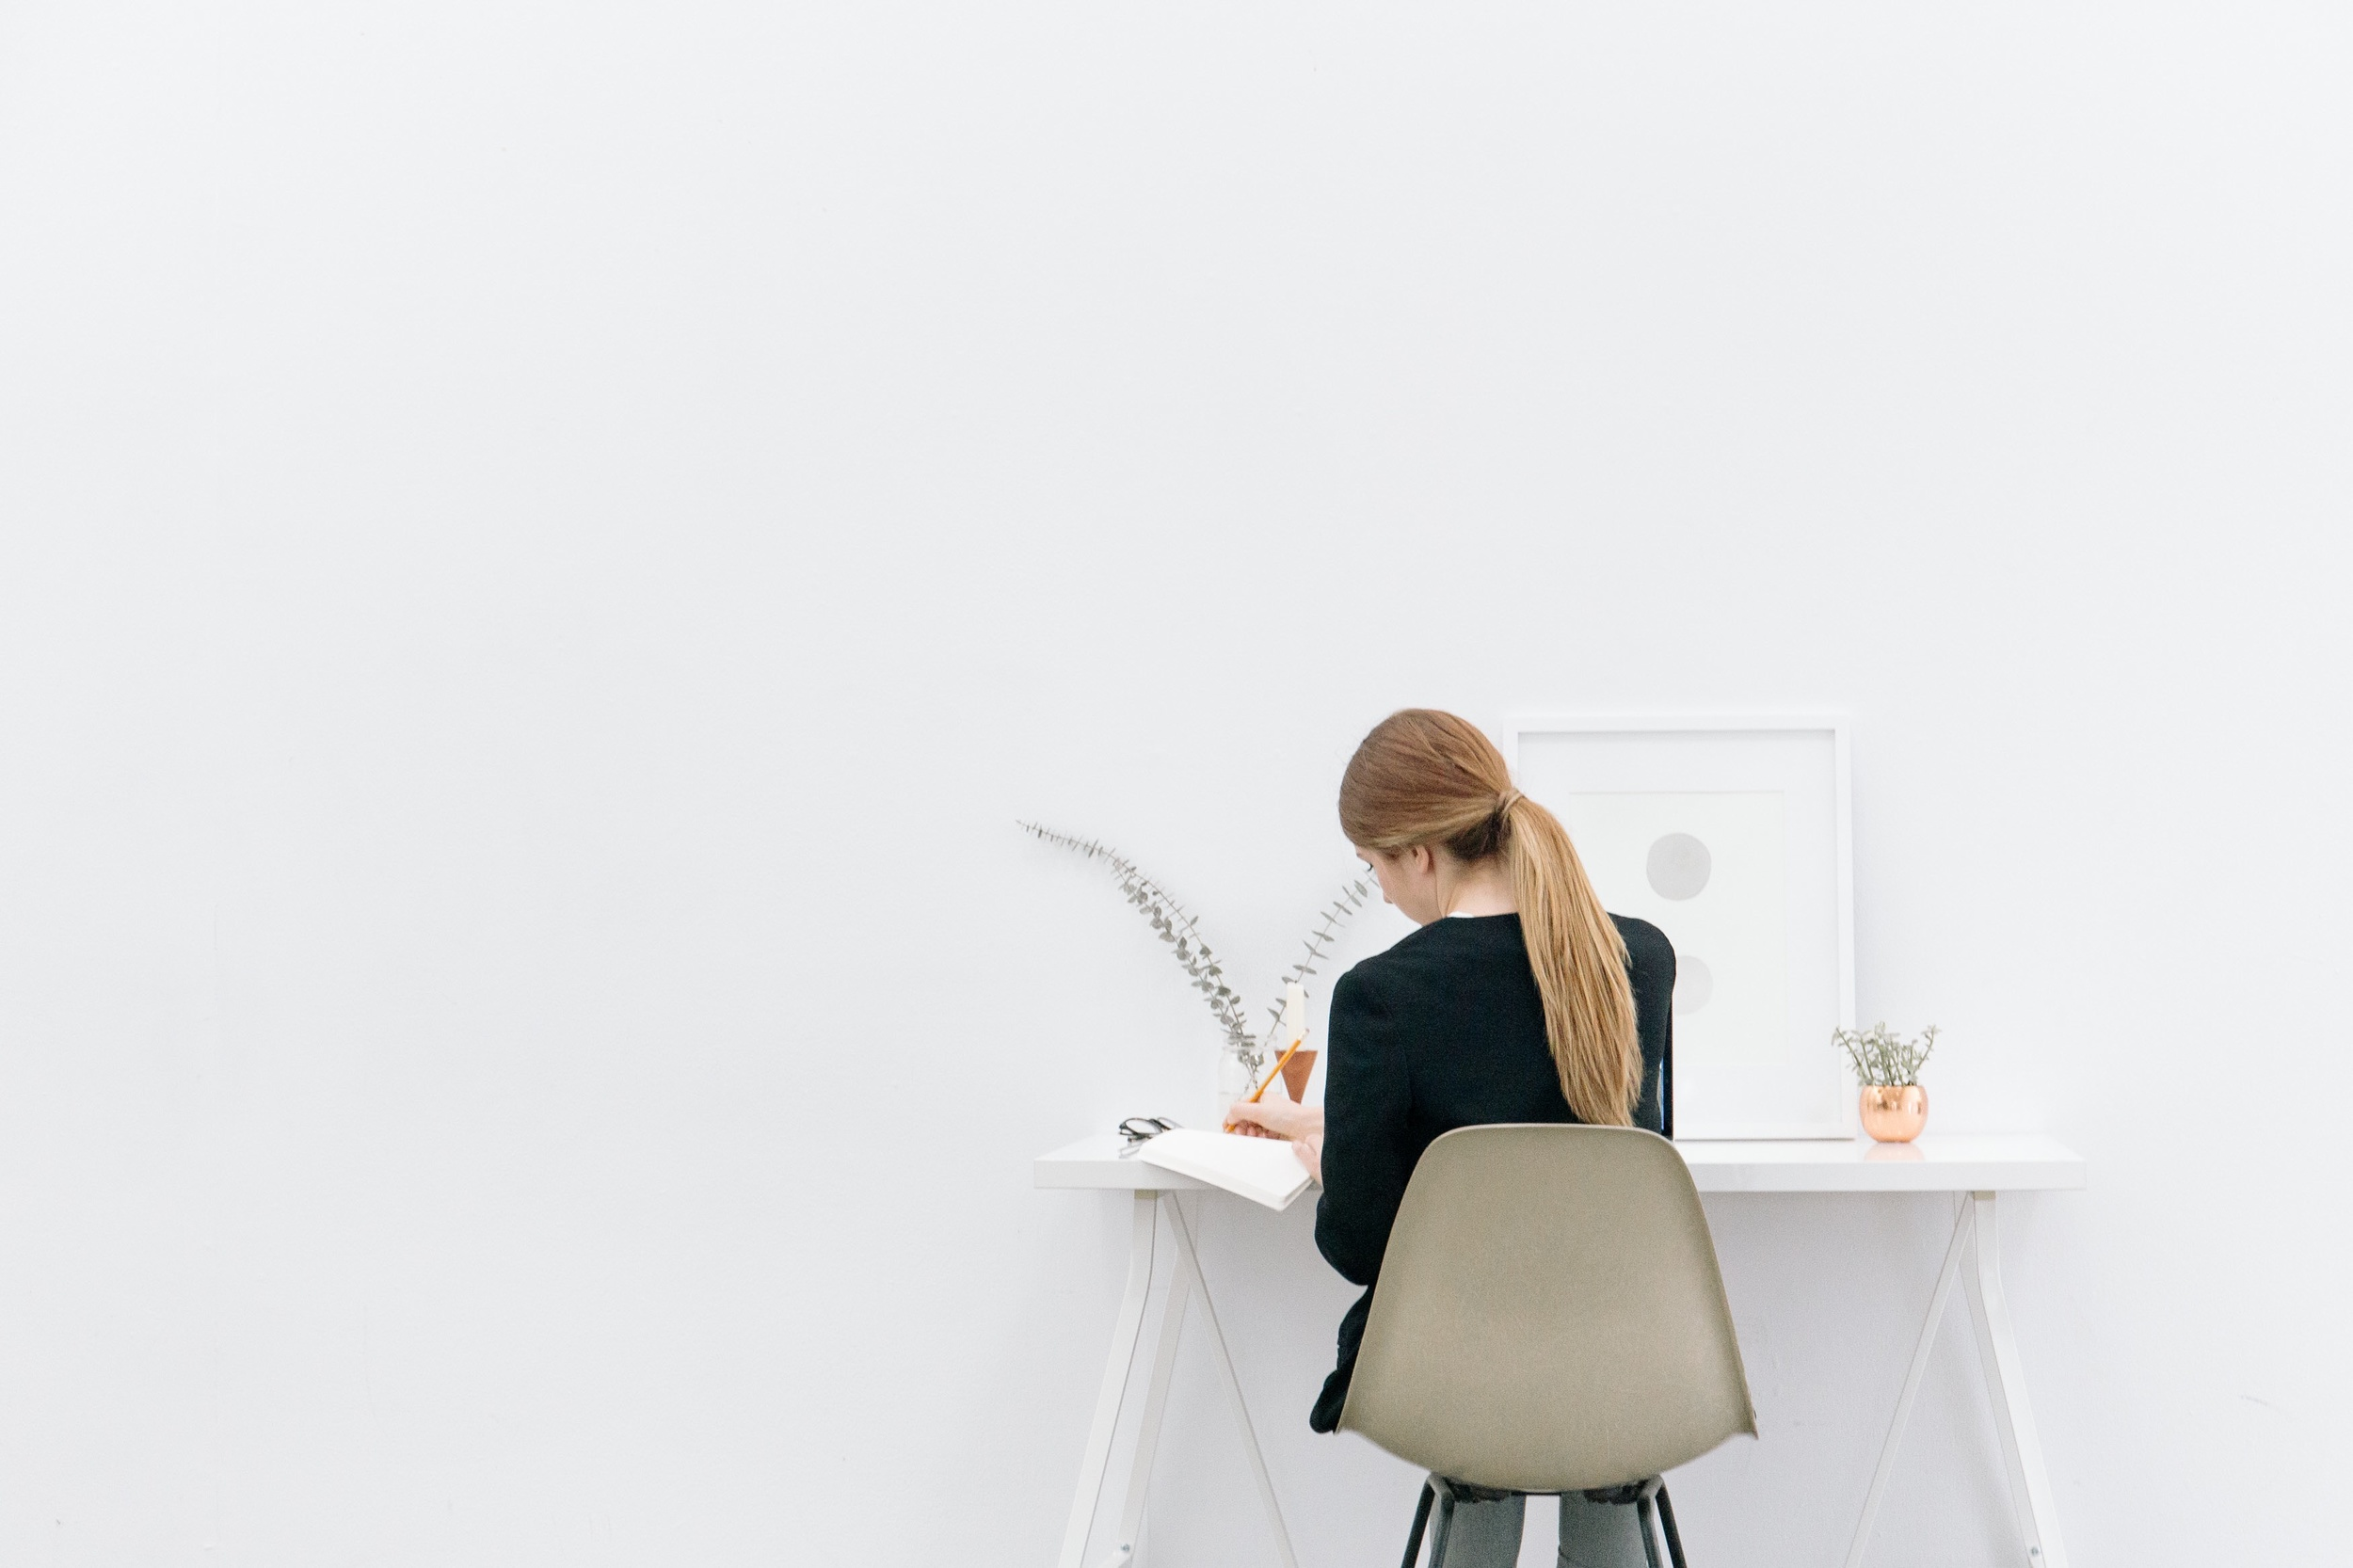 Woman Planning a website at desk